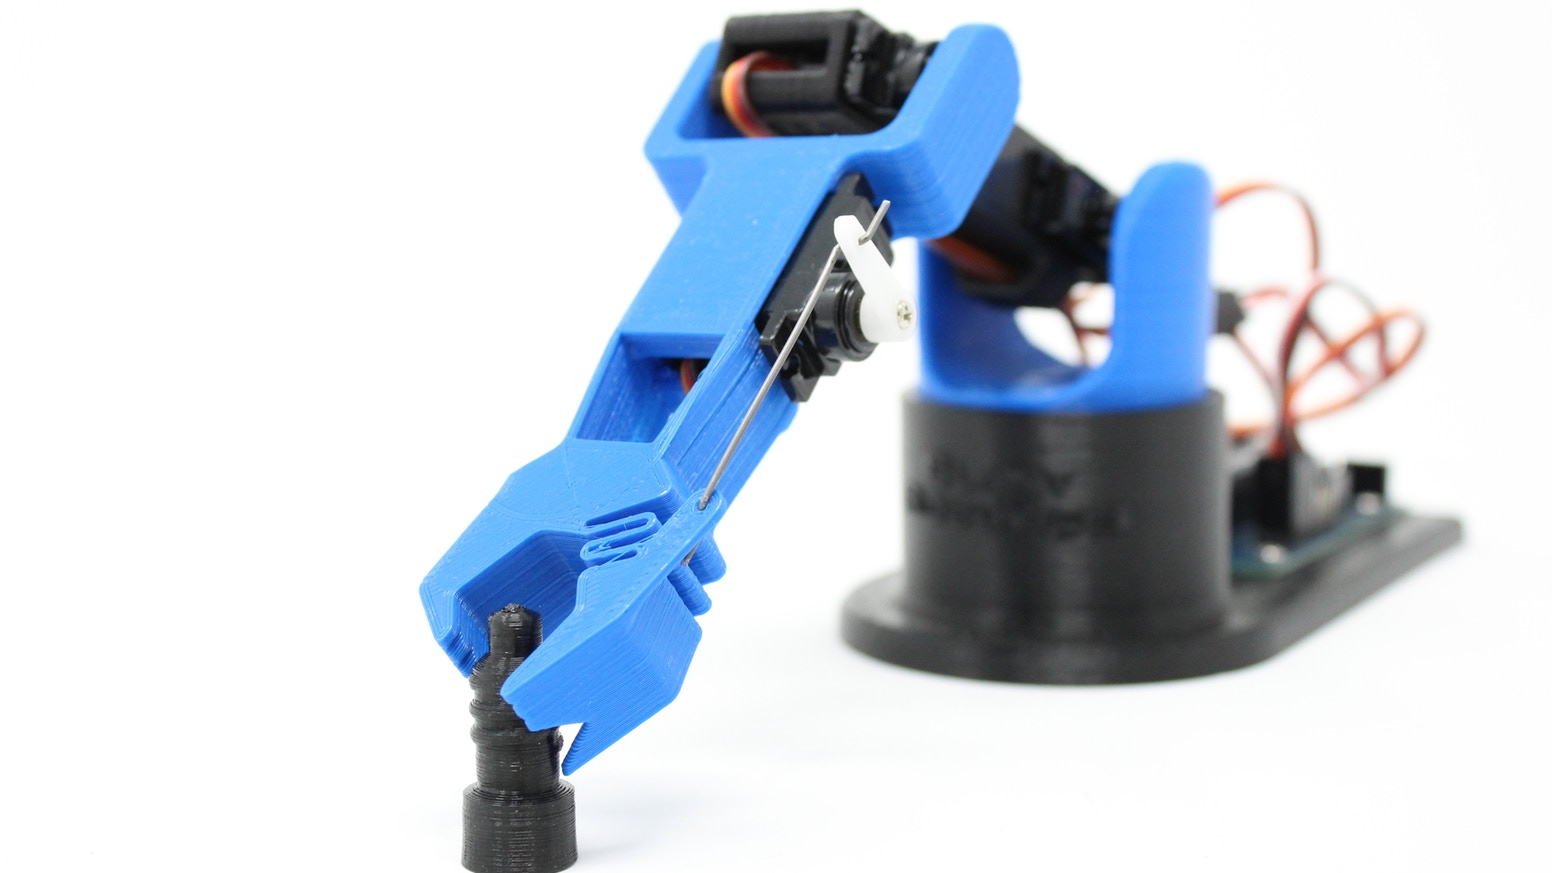 A 3D Printed DIY Arduino Robot Arm Kit for STEM Education and Garage Hobbyists